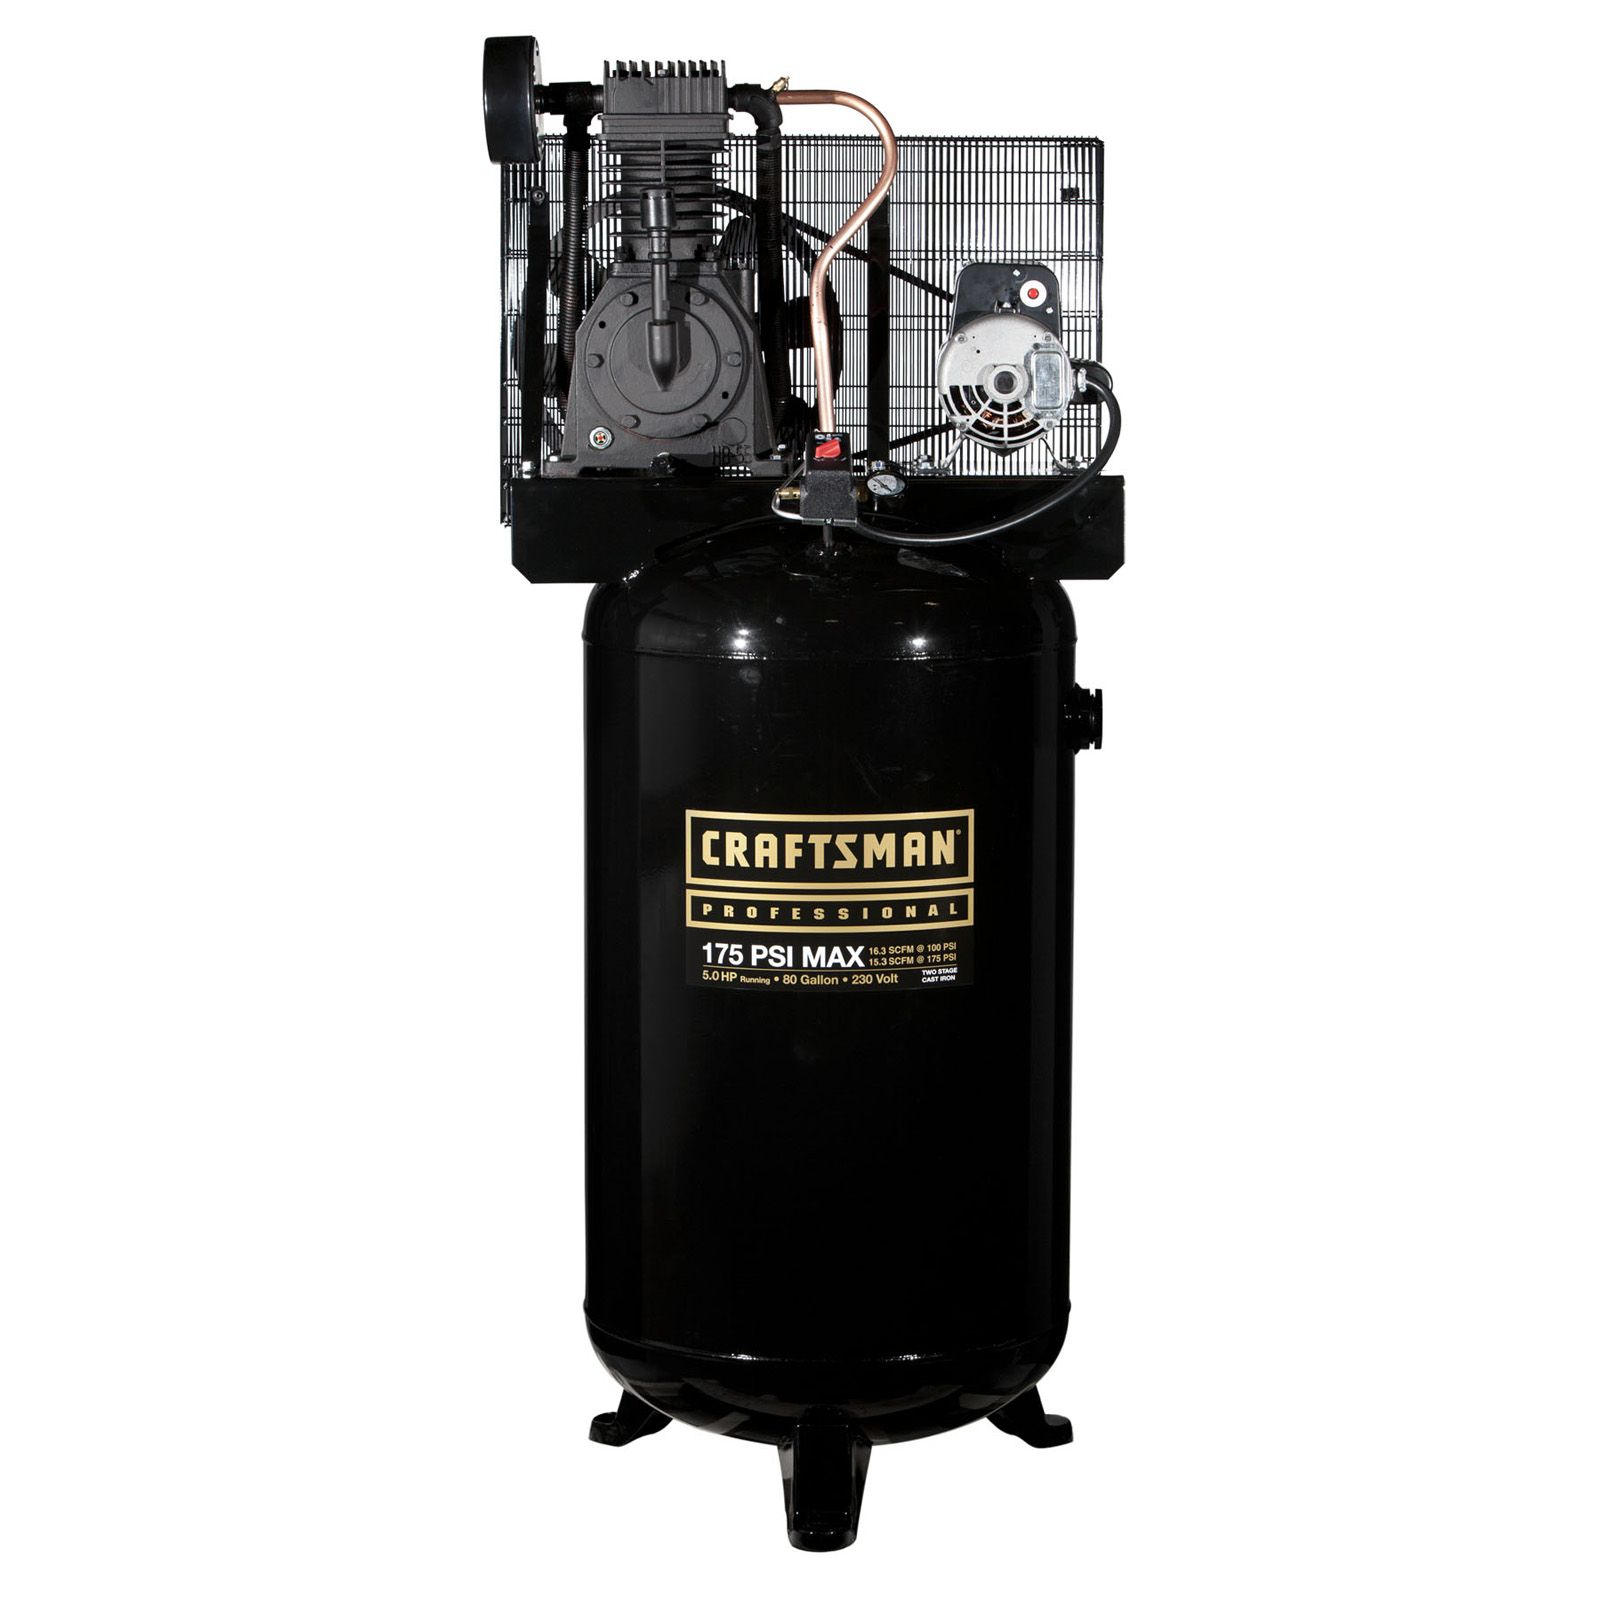 Craftsman Professional 80 Gallon 2 Stage Air Compressor Tools Air Compressors Air Tools Air Comp Craftsman Craftsman Air Compressor Air Tools